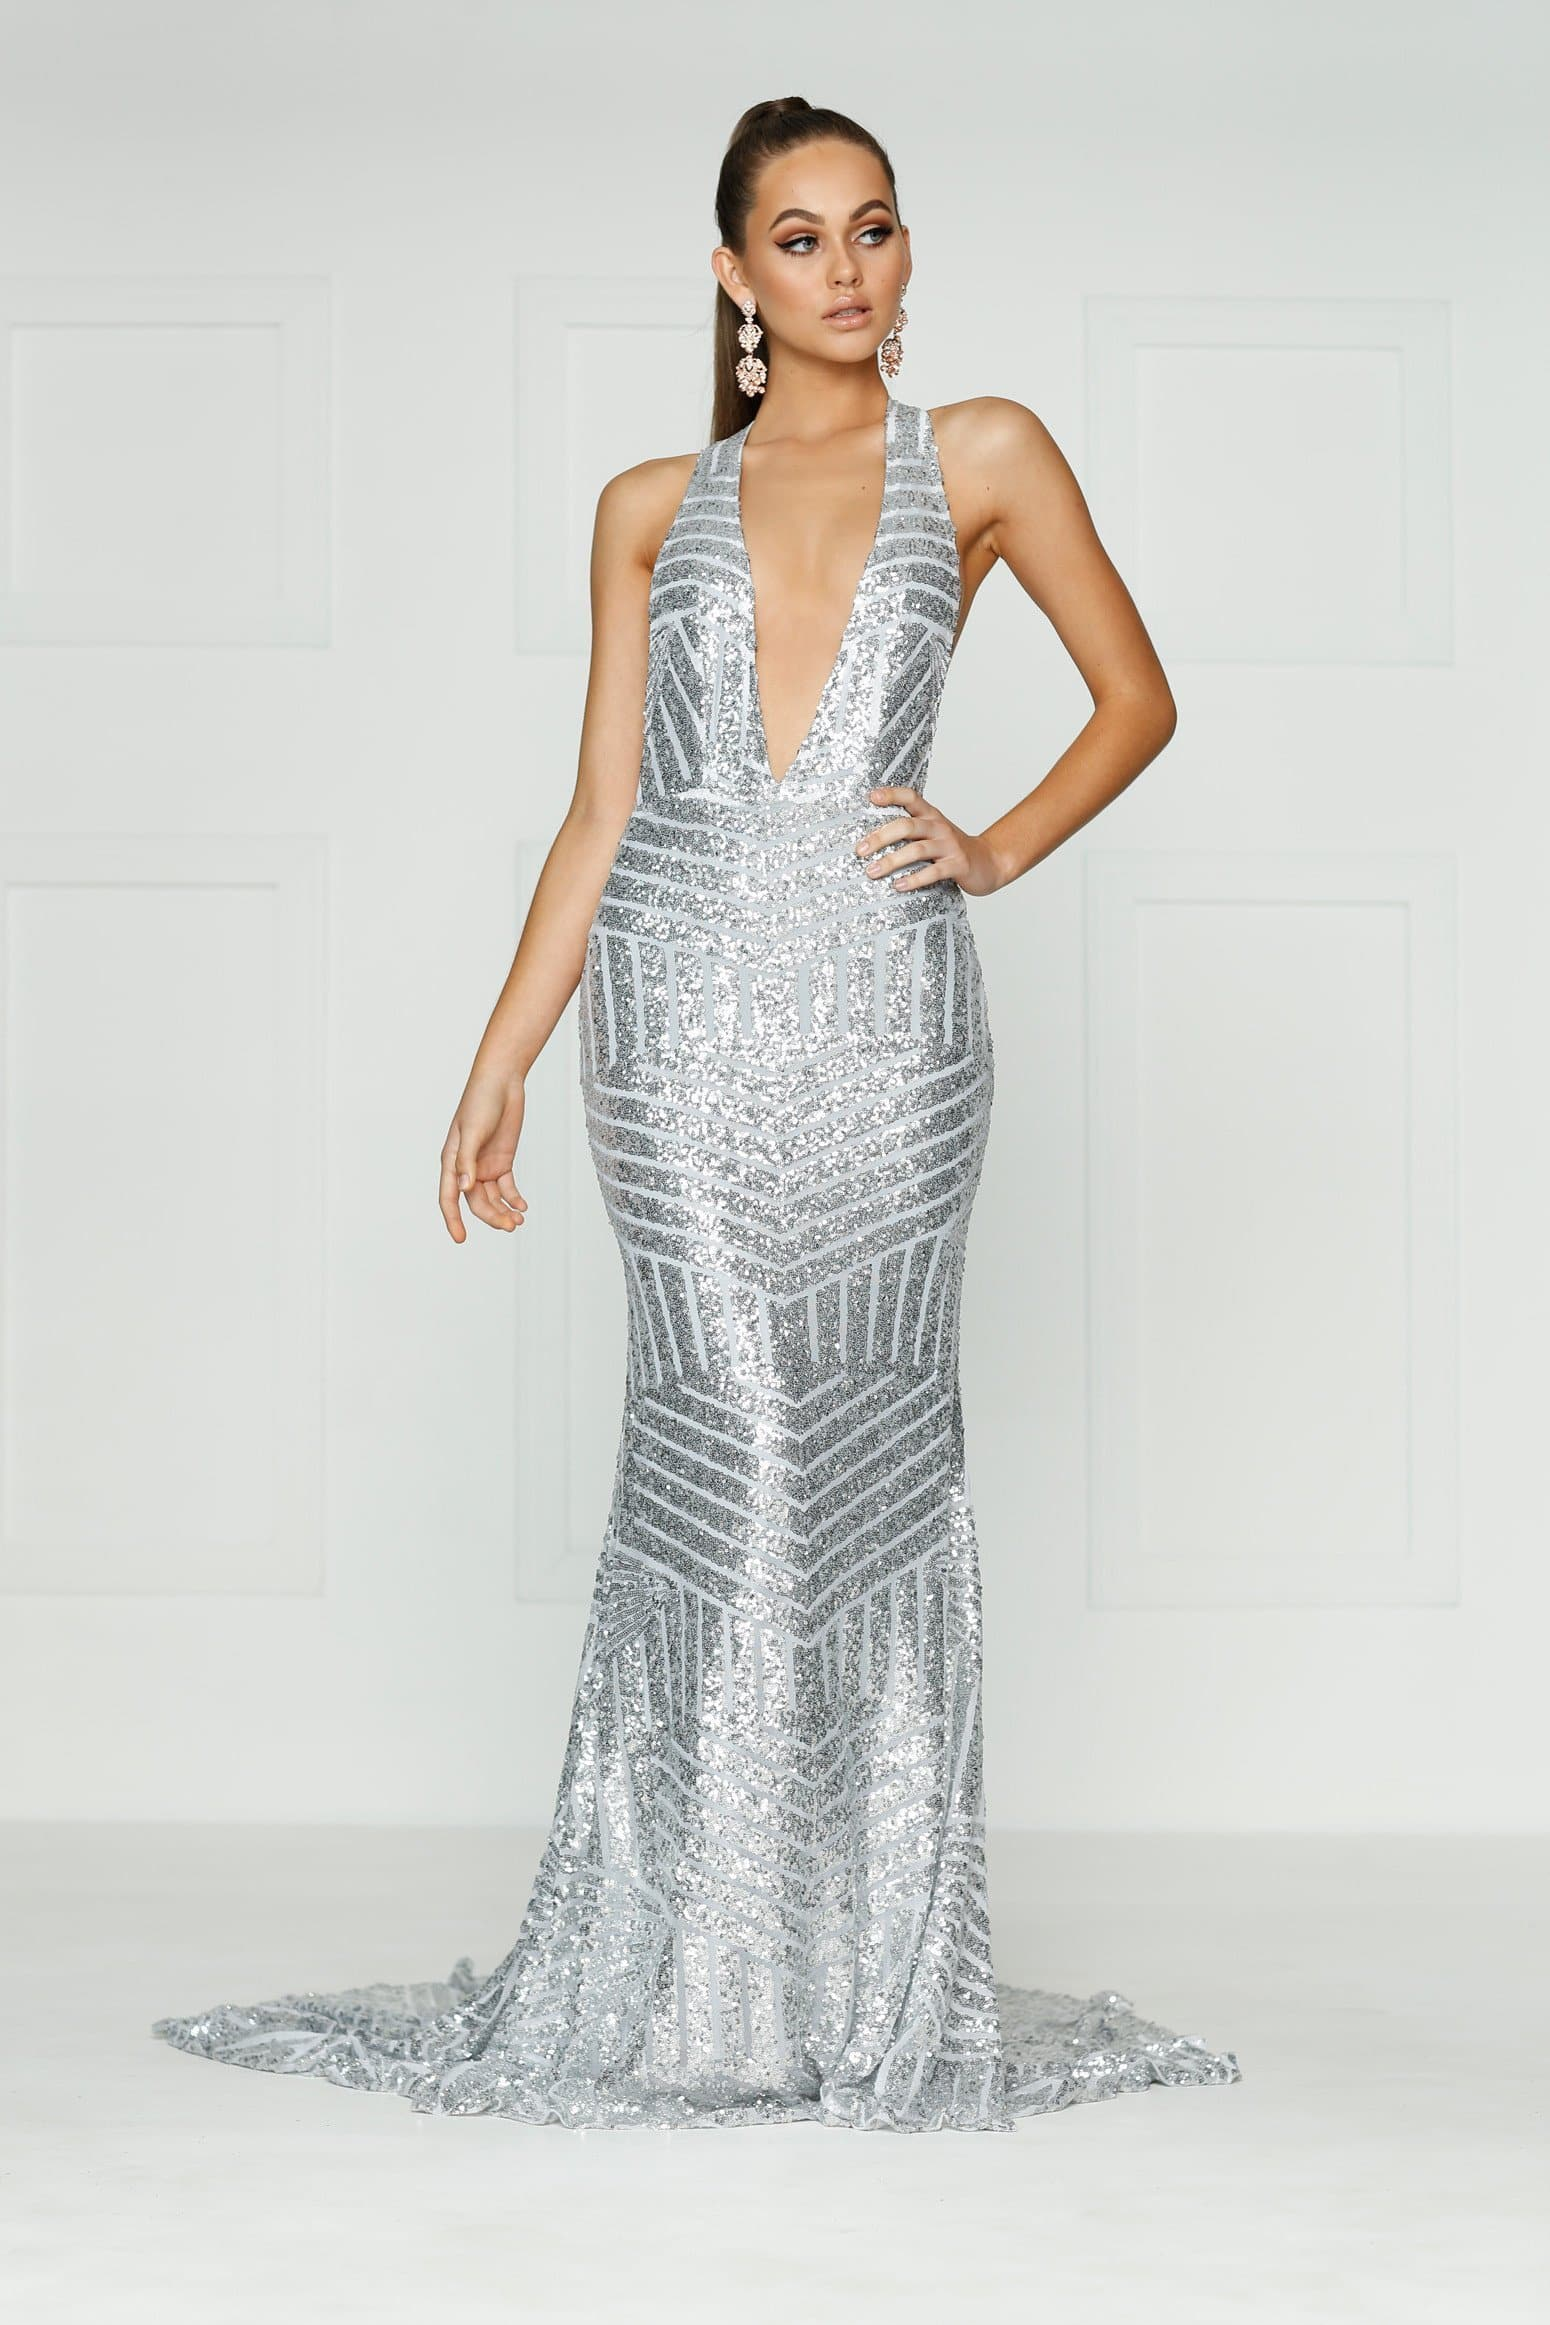 A&N Alia- Silver Sequins Multi-Way Dress with V Neck – A&N Luxe Label